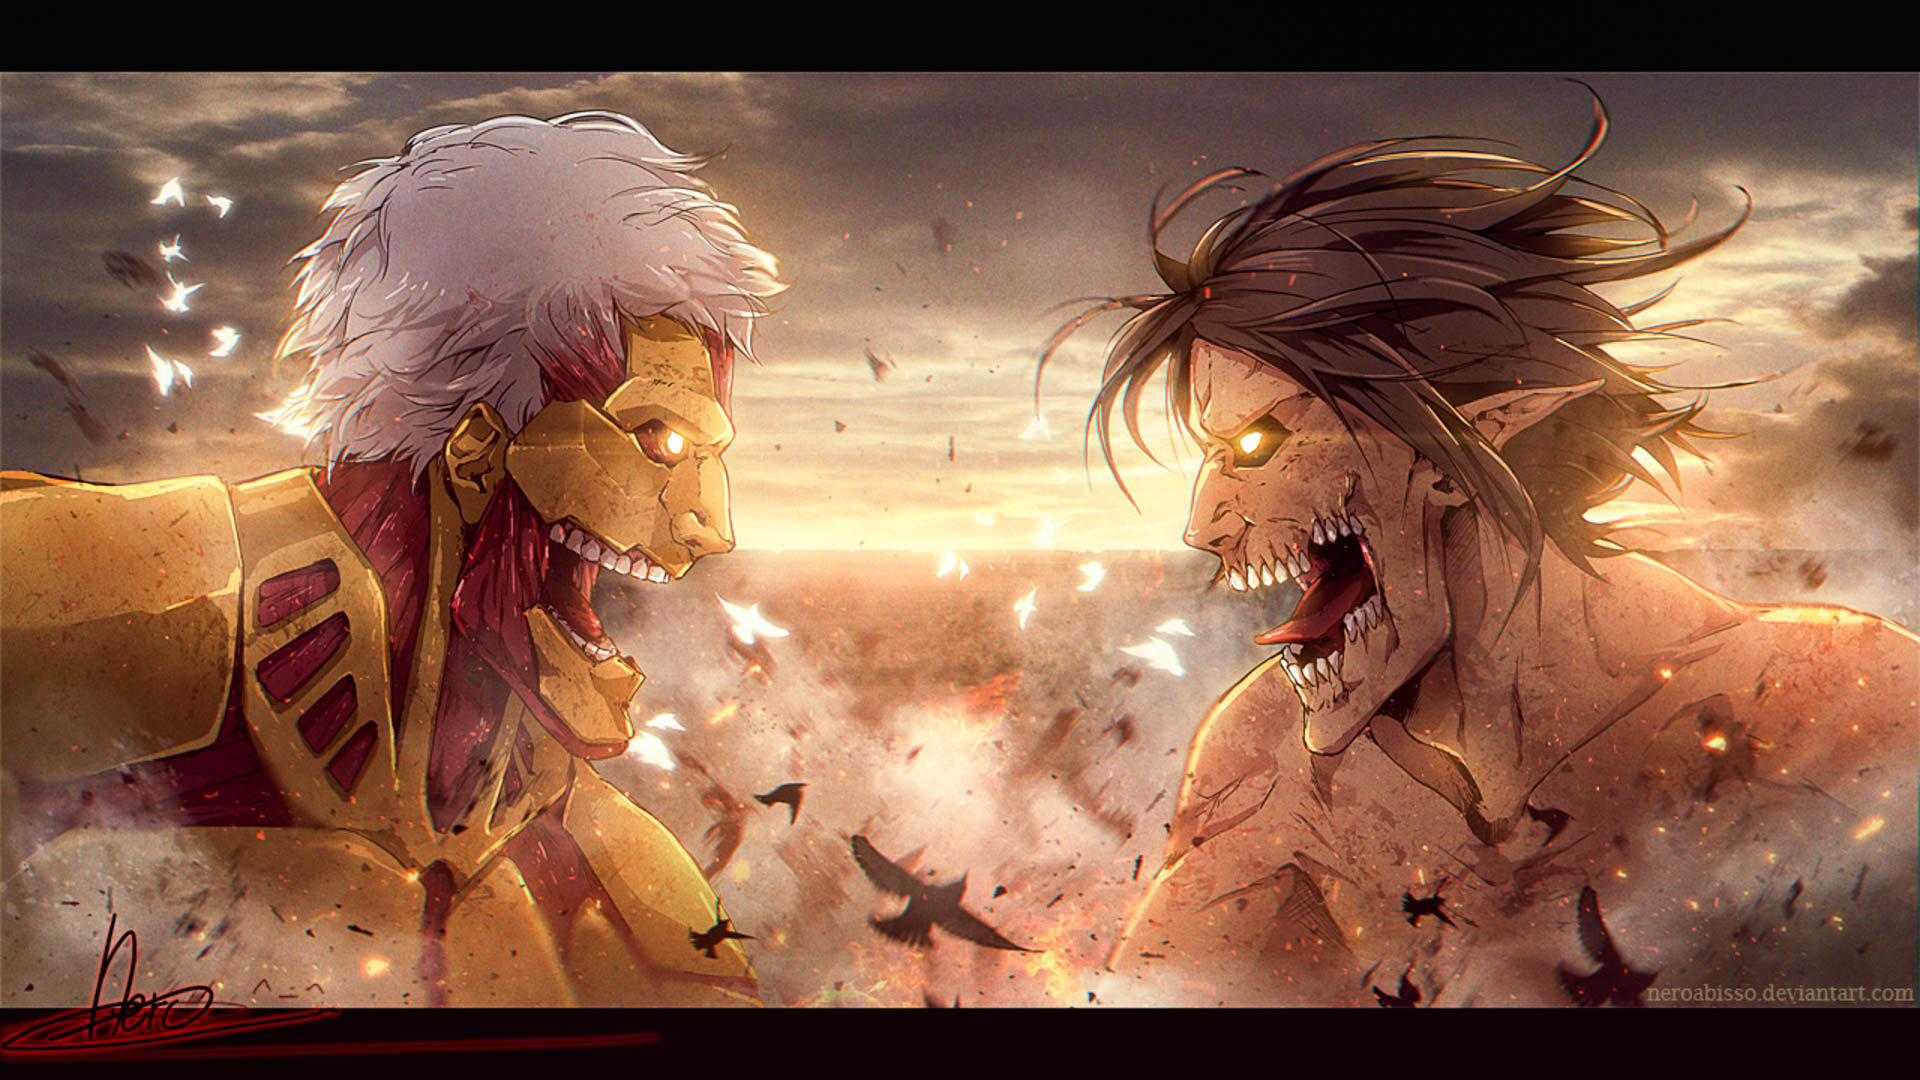 The tv adaptation of hajime isayama's critically acclaimed manga series attack on titan is one of the most popular shows among anime fans. Attack On Titan Wallpaper In High Quality - All HD Wallpapers